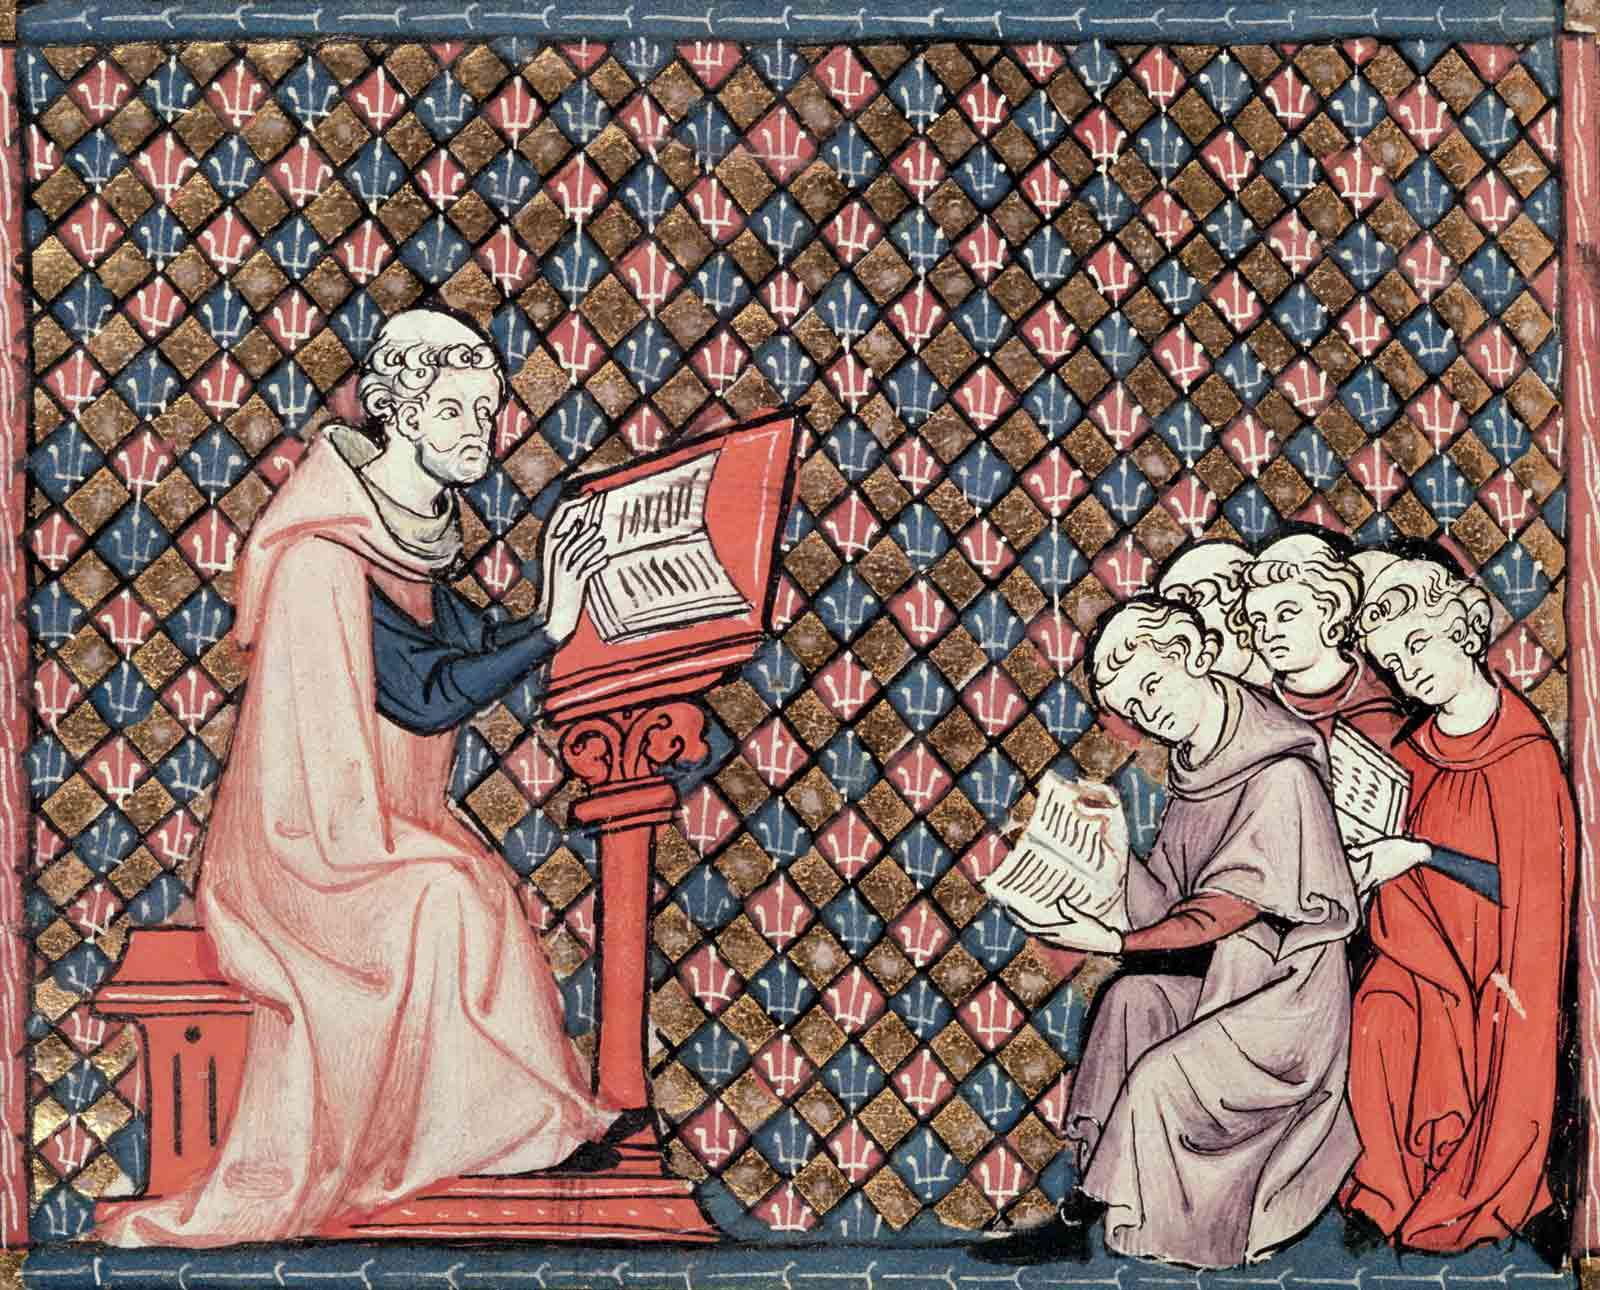 Illustration of a philosophy lesson, from Ovid's Metamorphoses, by Chretien Legouis, France, fourteenth century